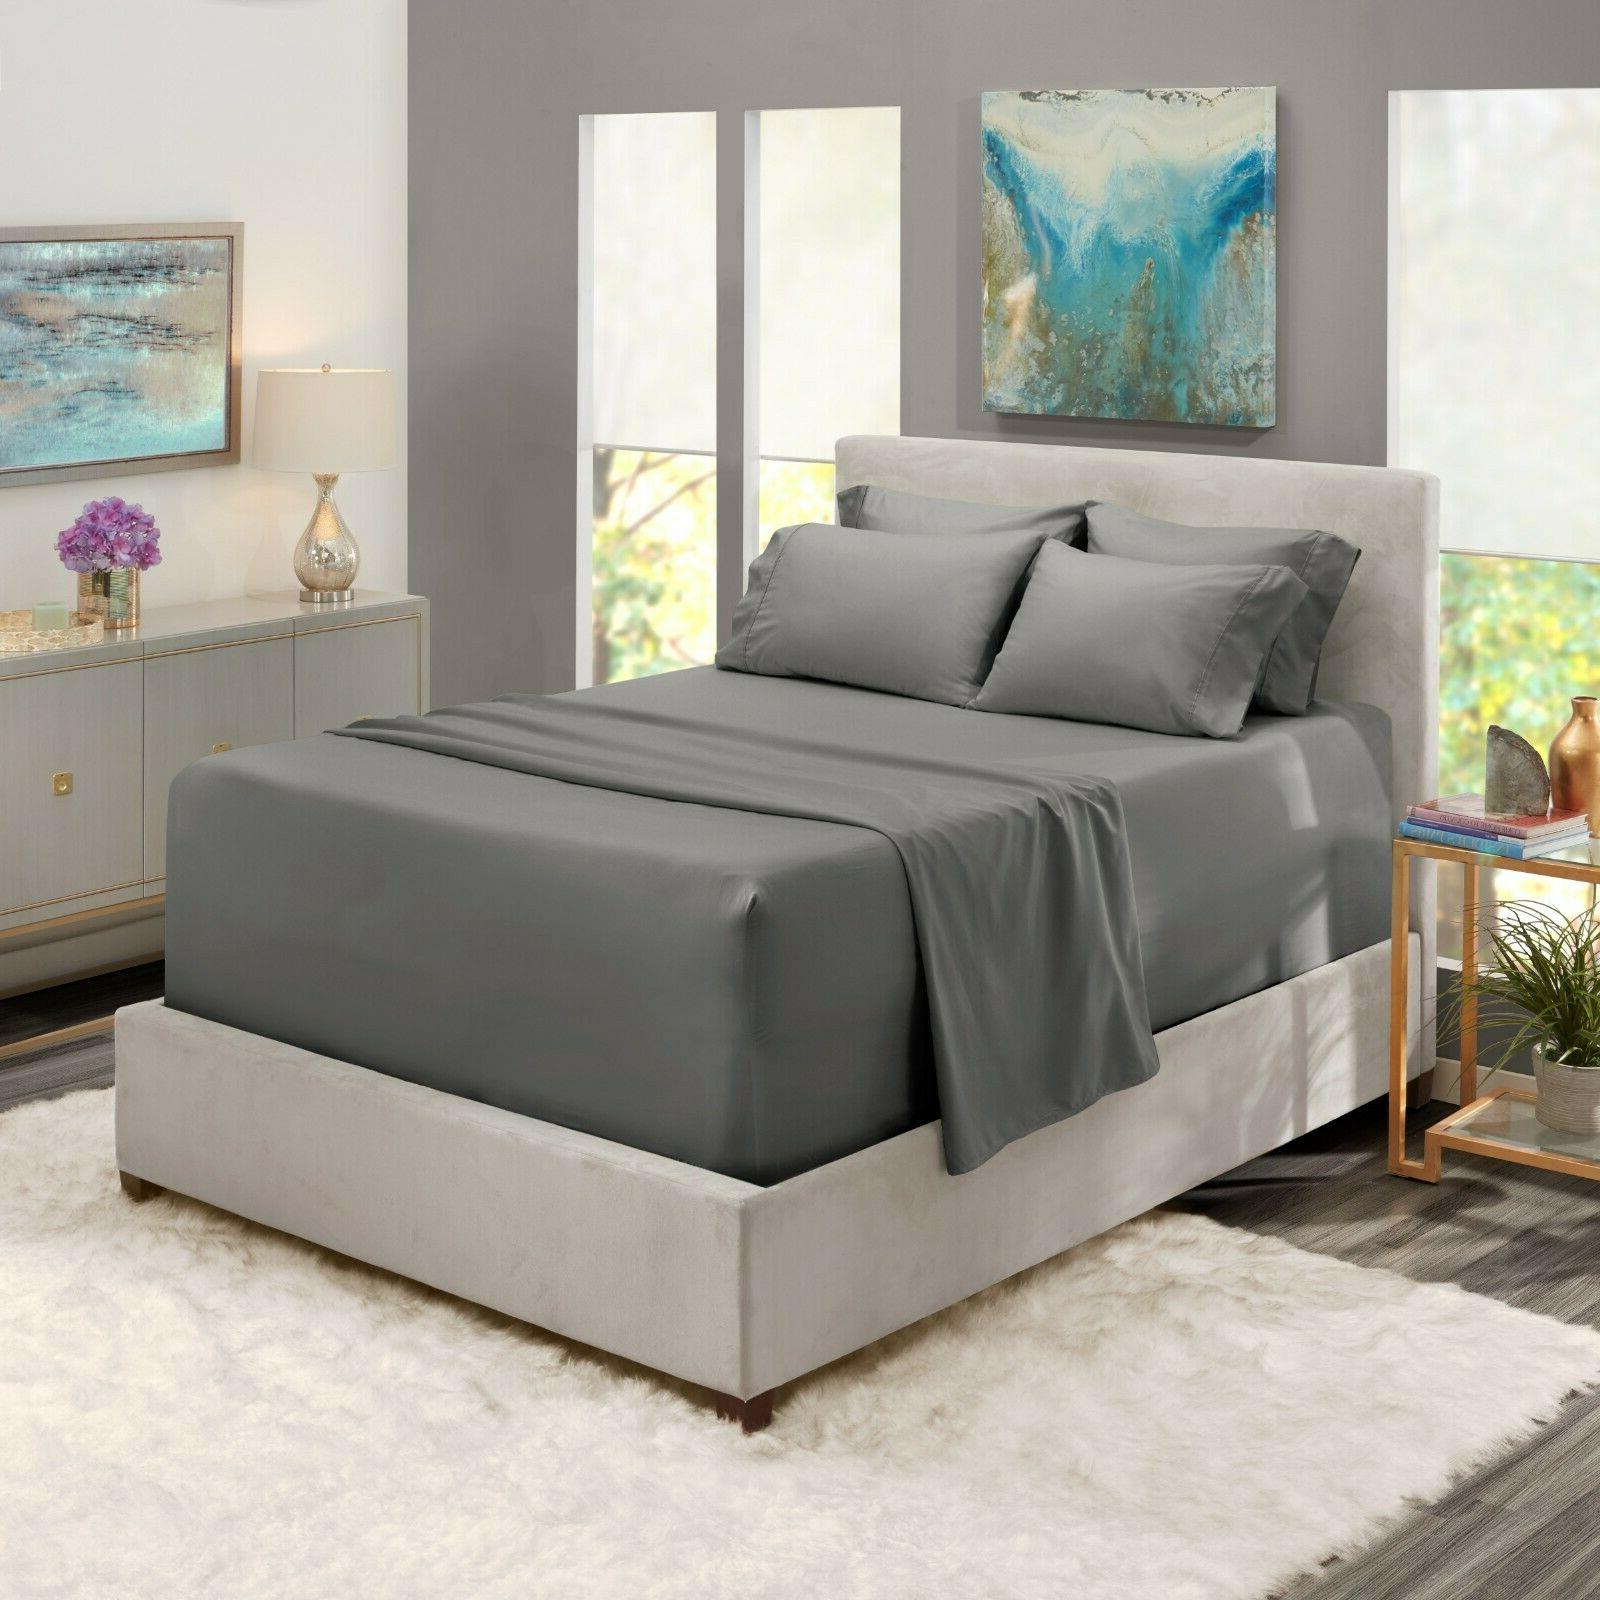 6 piece 1800 count bed sheet set